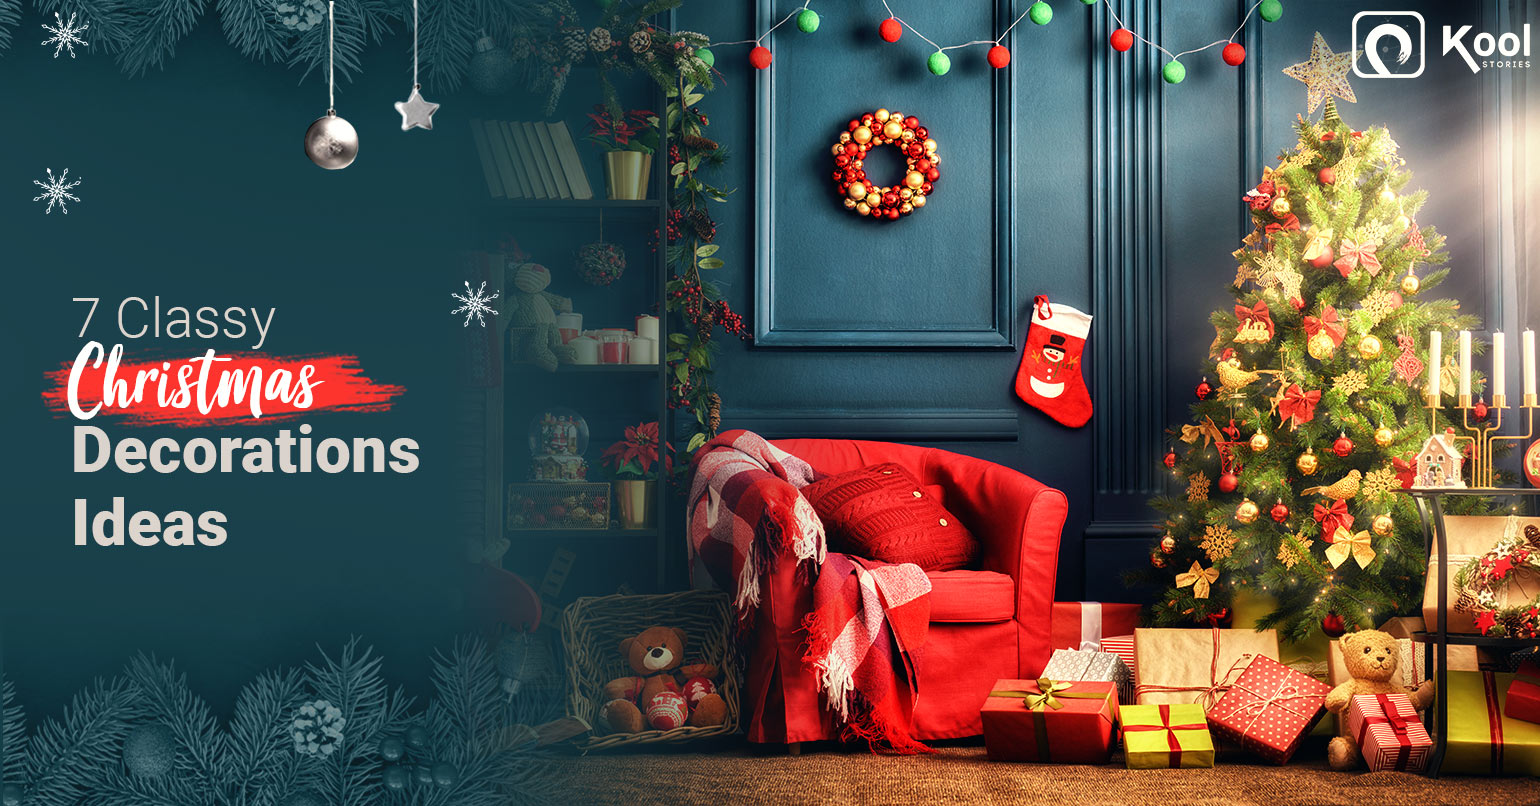 7 Skilful Christmas Decorations Ideas for a Merry Christmas